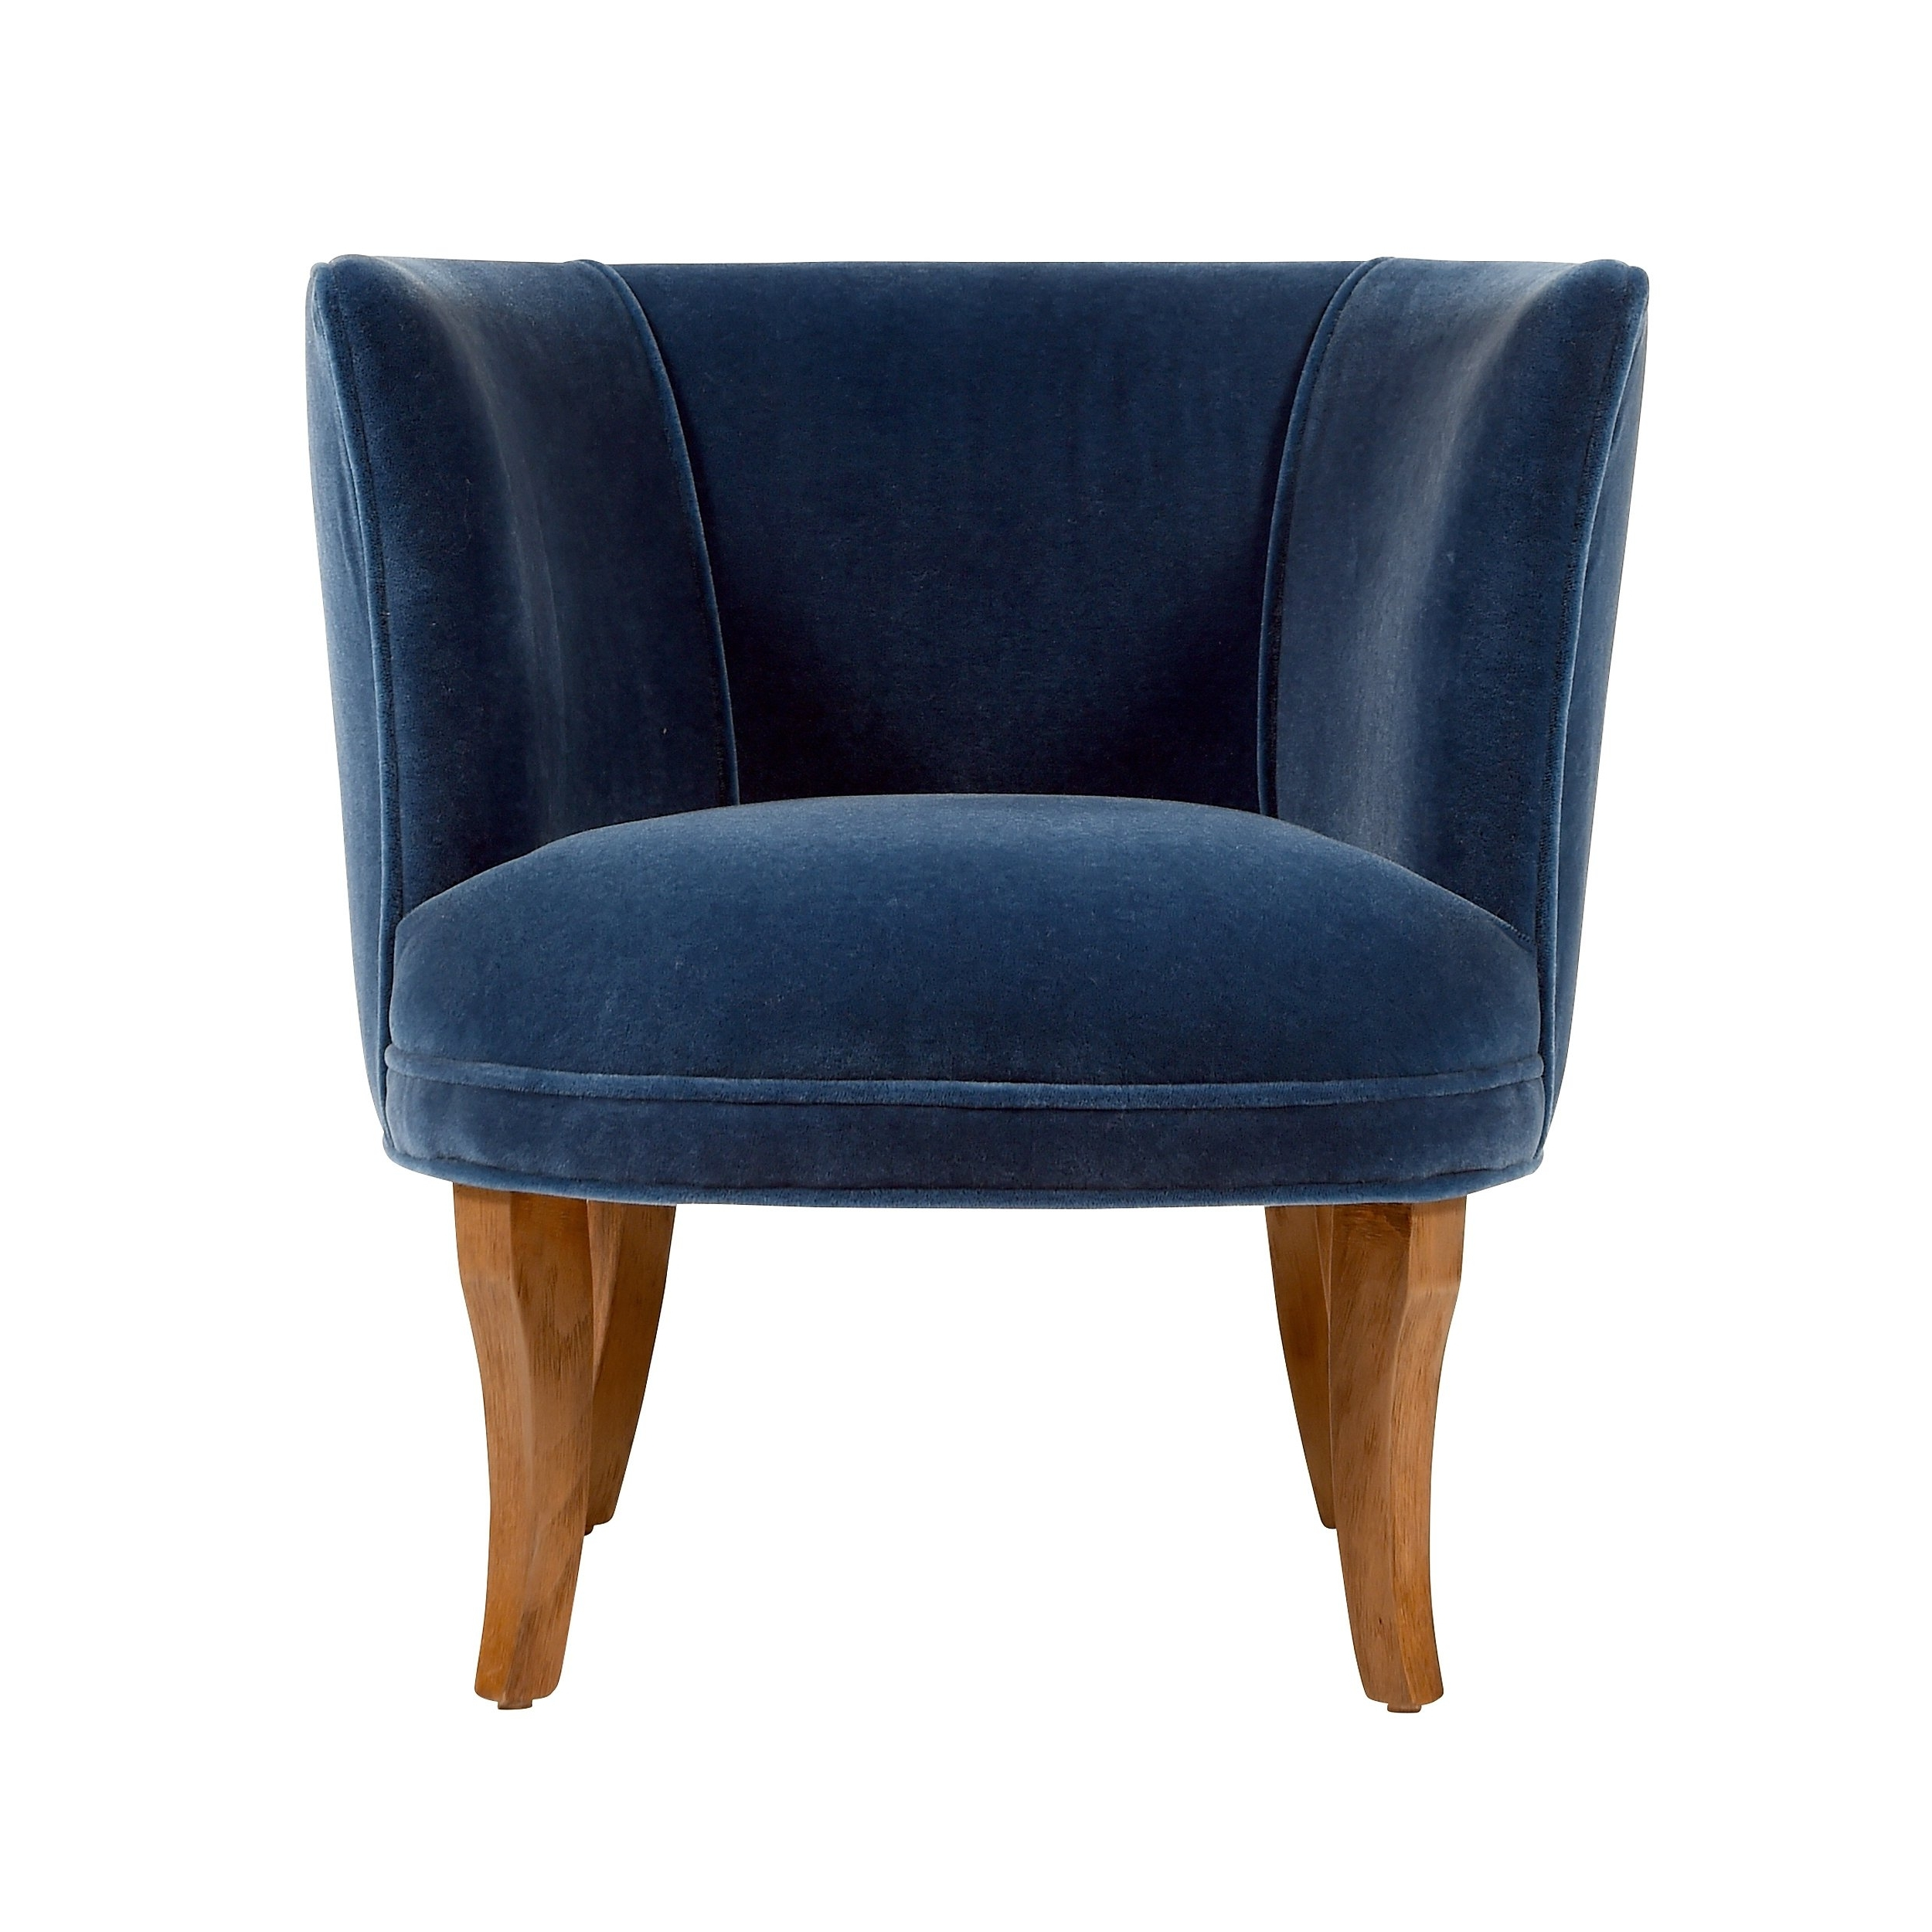 Well Known Shop Jaxon Bella Navy Blue Velvet Upholstered Armchair – Free Inside Jaxon Grey Upholstered Side Chairs (View 20 of 20)